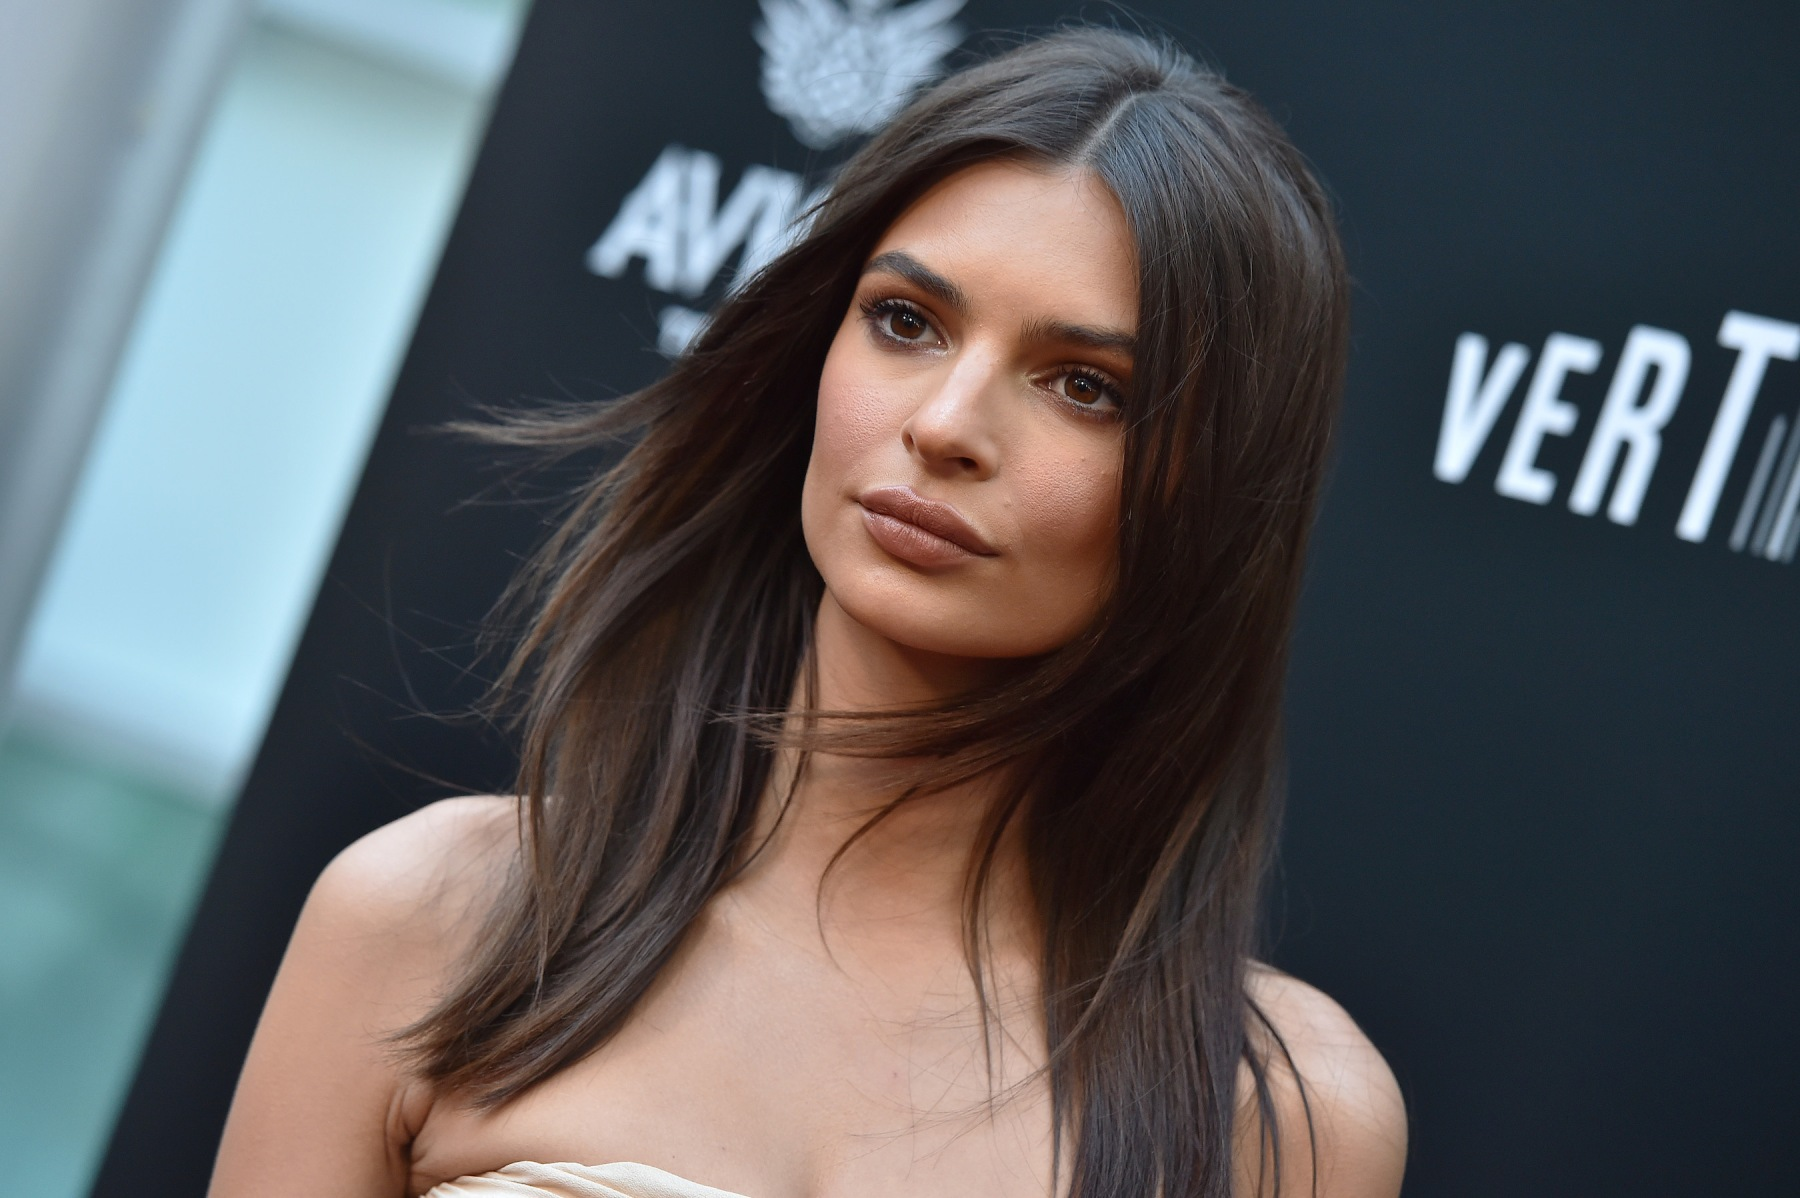 Model Emily Ratajkowski attends the premiere of Vertical Entertainment's 'In Darkness' at ArcLight Hollywood on May 23, 2018 in Hollywood, California.  (Photo by Axelle/Bauer-Griffin/FilmMagic)